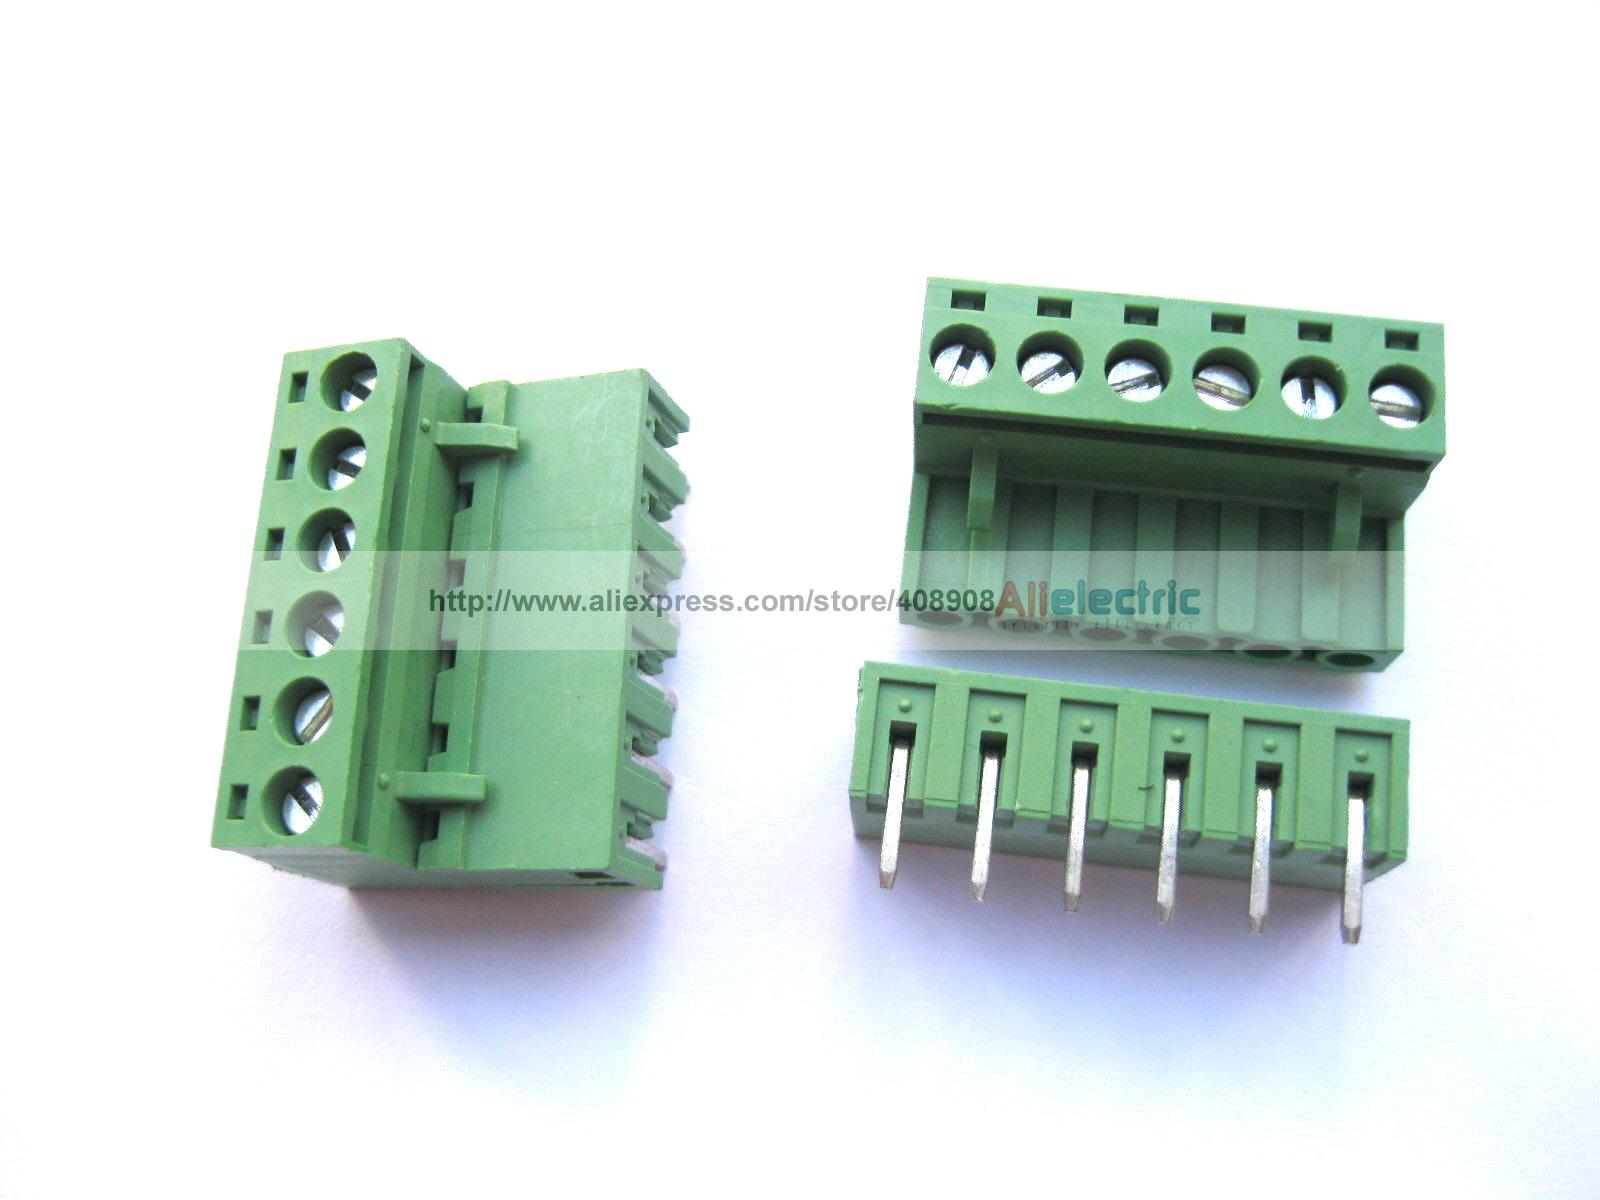 50 Pcs 5.08mm Angle 6 Pin Screw Terminal Block Connector Pluggable Type Green 30 pcs screw terminal block connector 3 81mm 12 pin green pluggable type